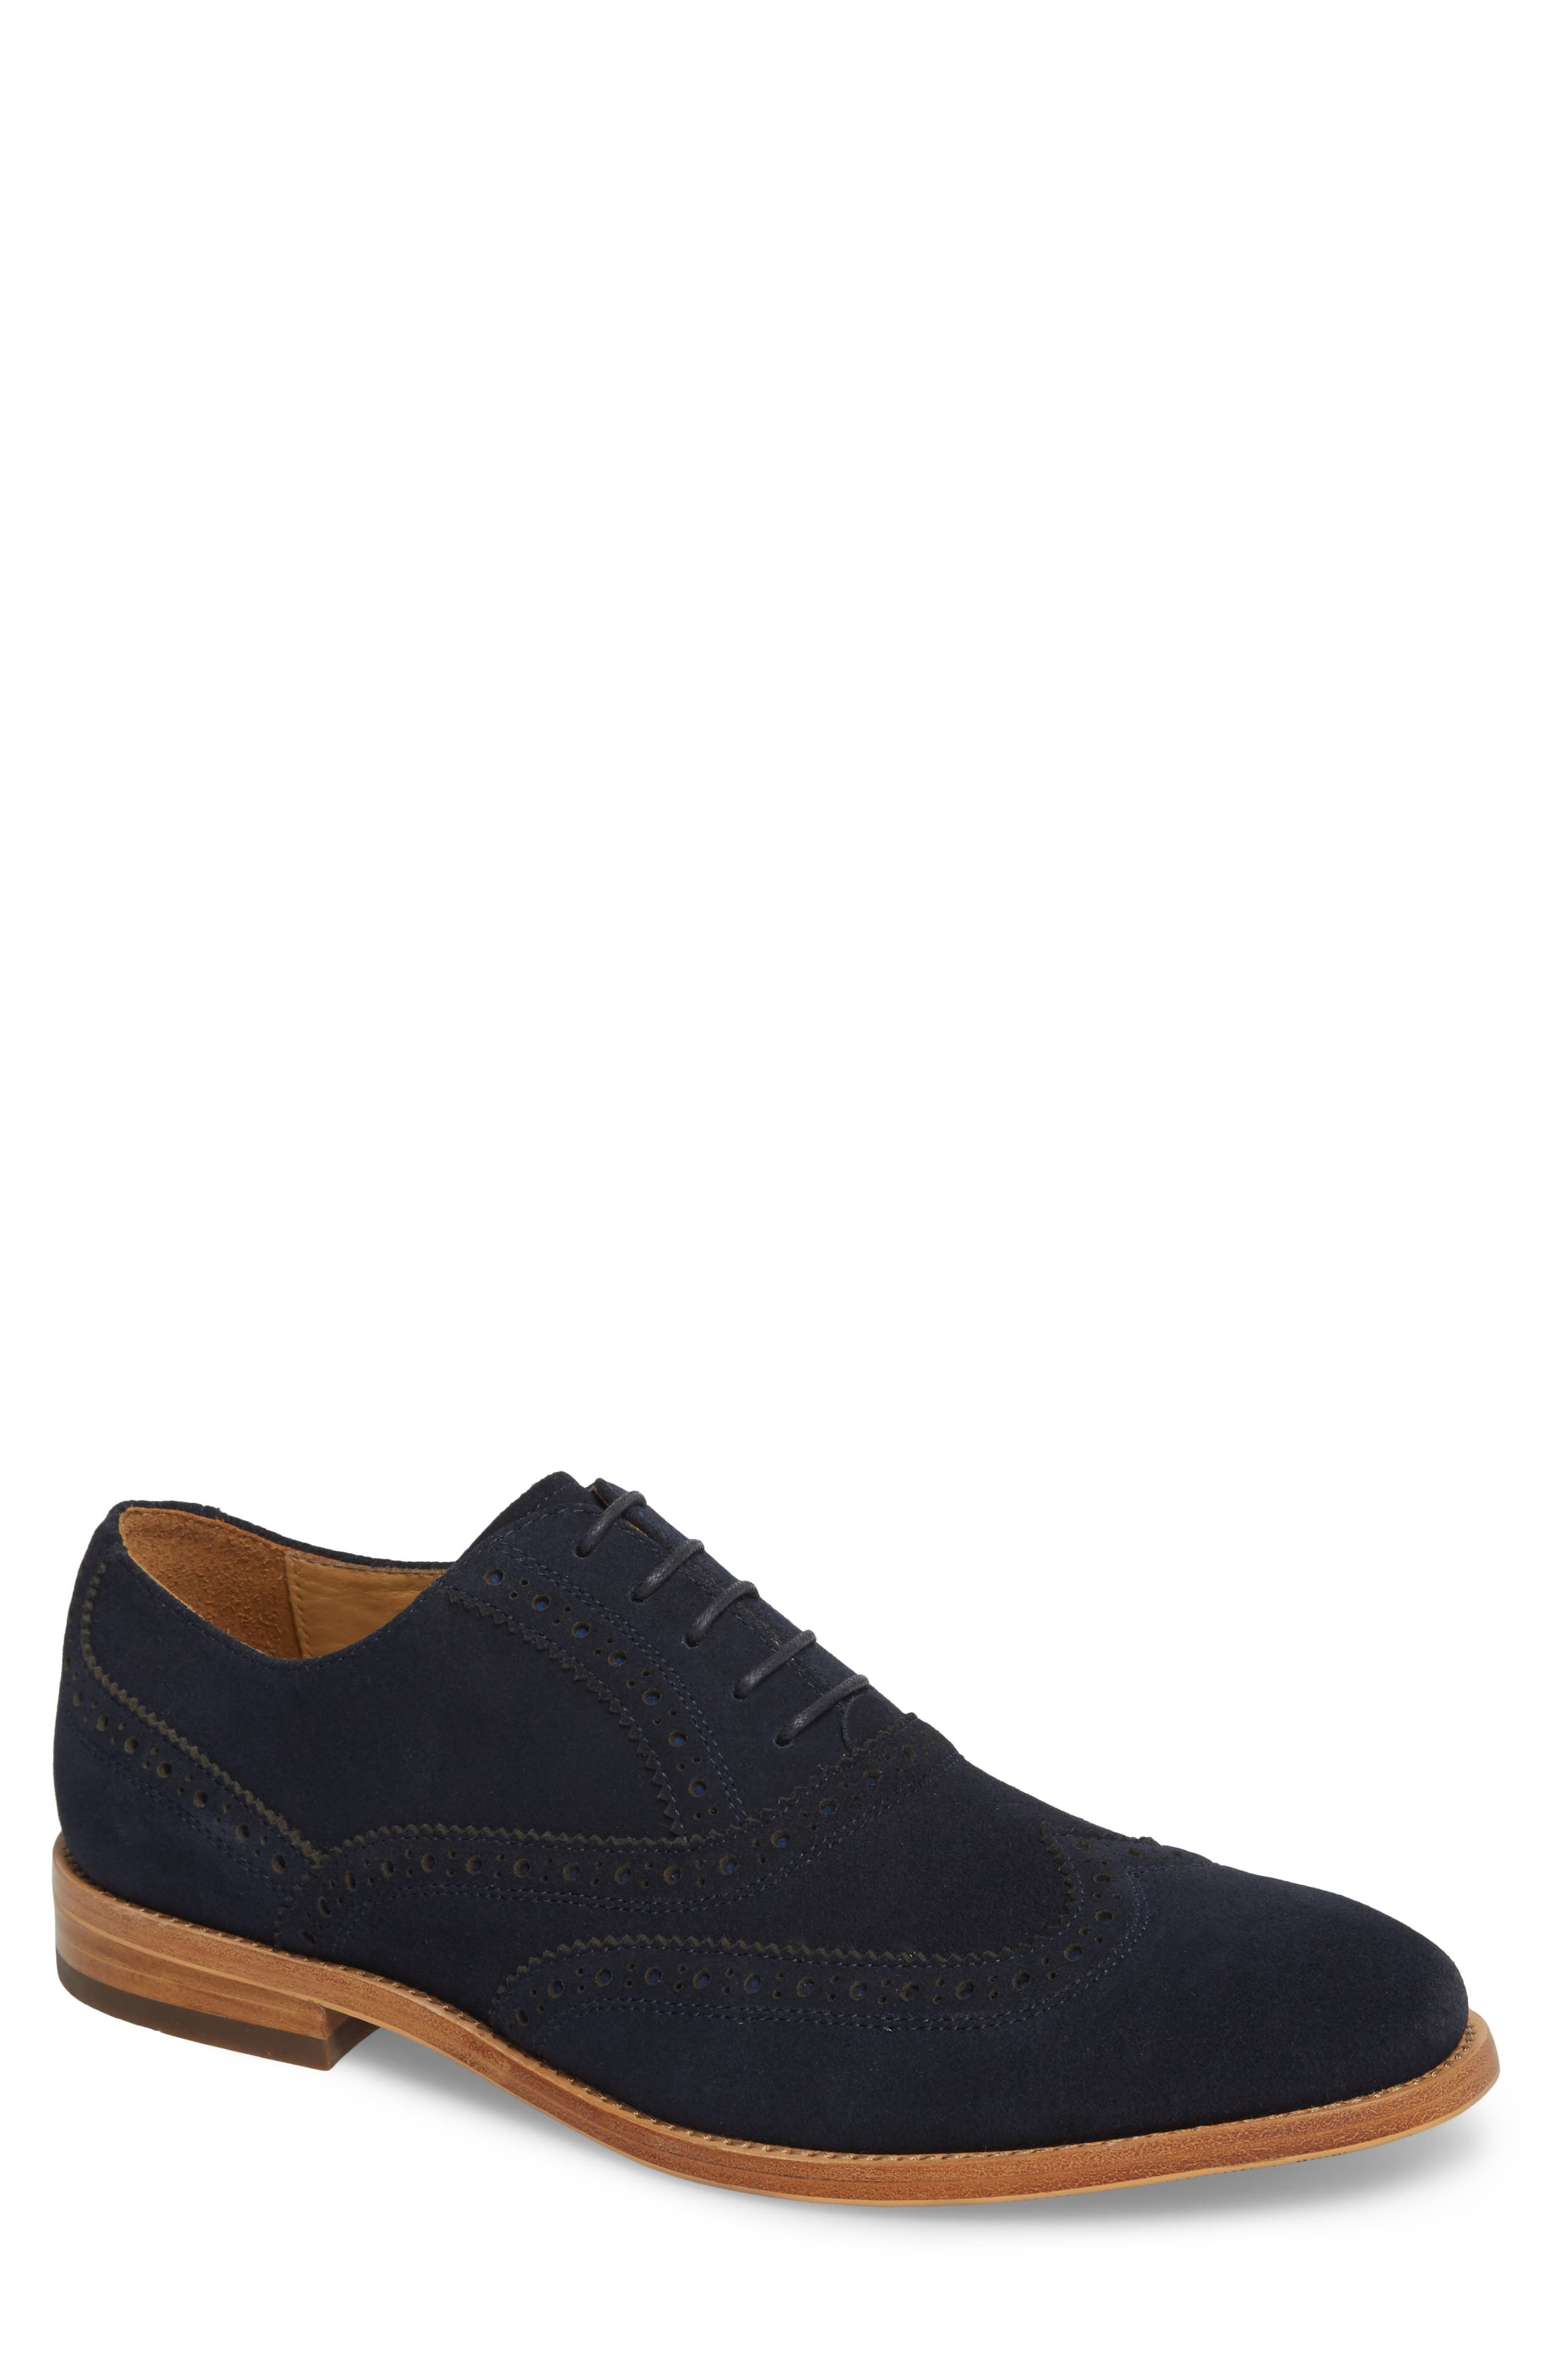 John W. Nordstrom Rodrigo Wingtip Oxford (Men)